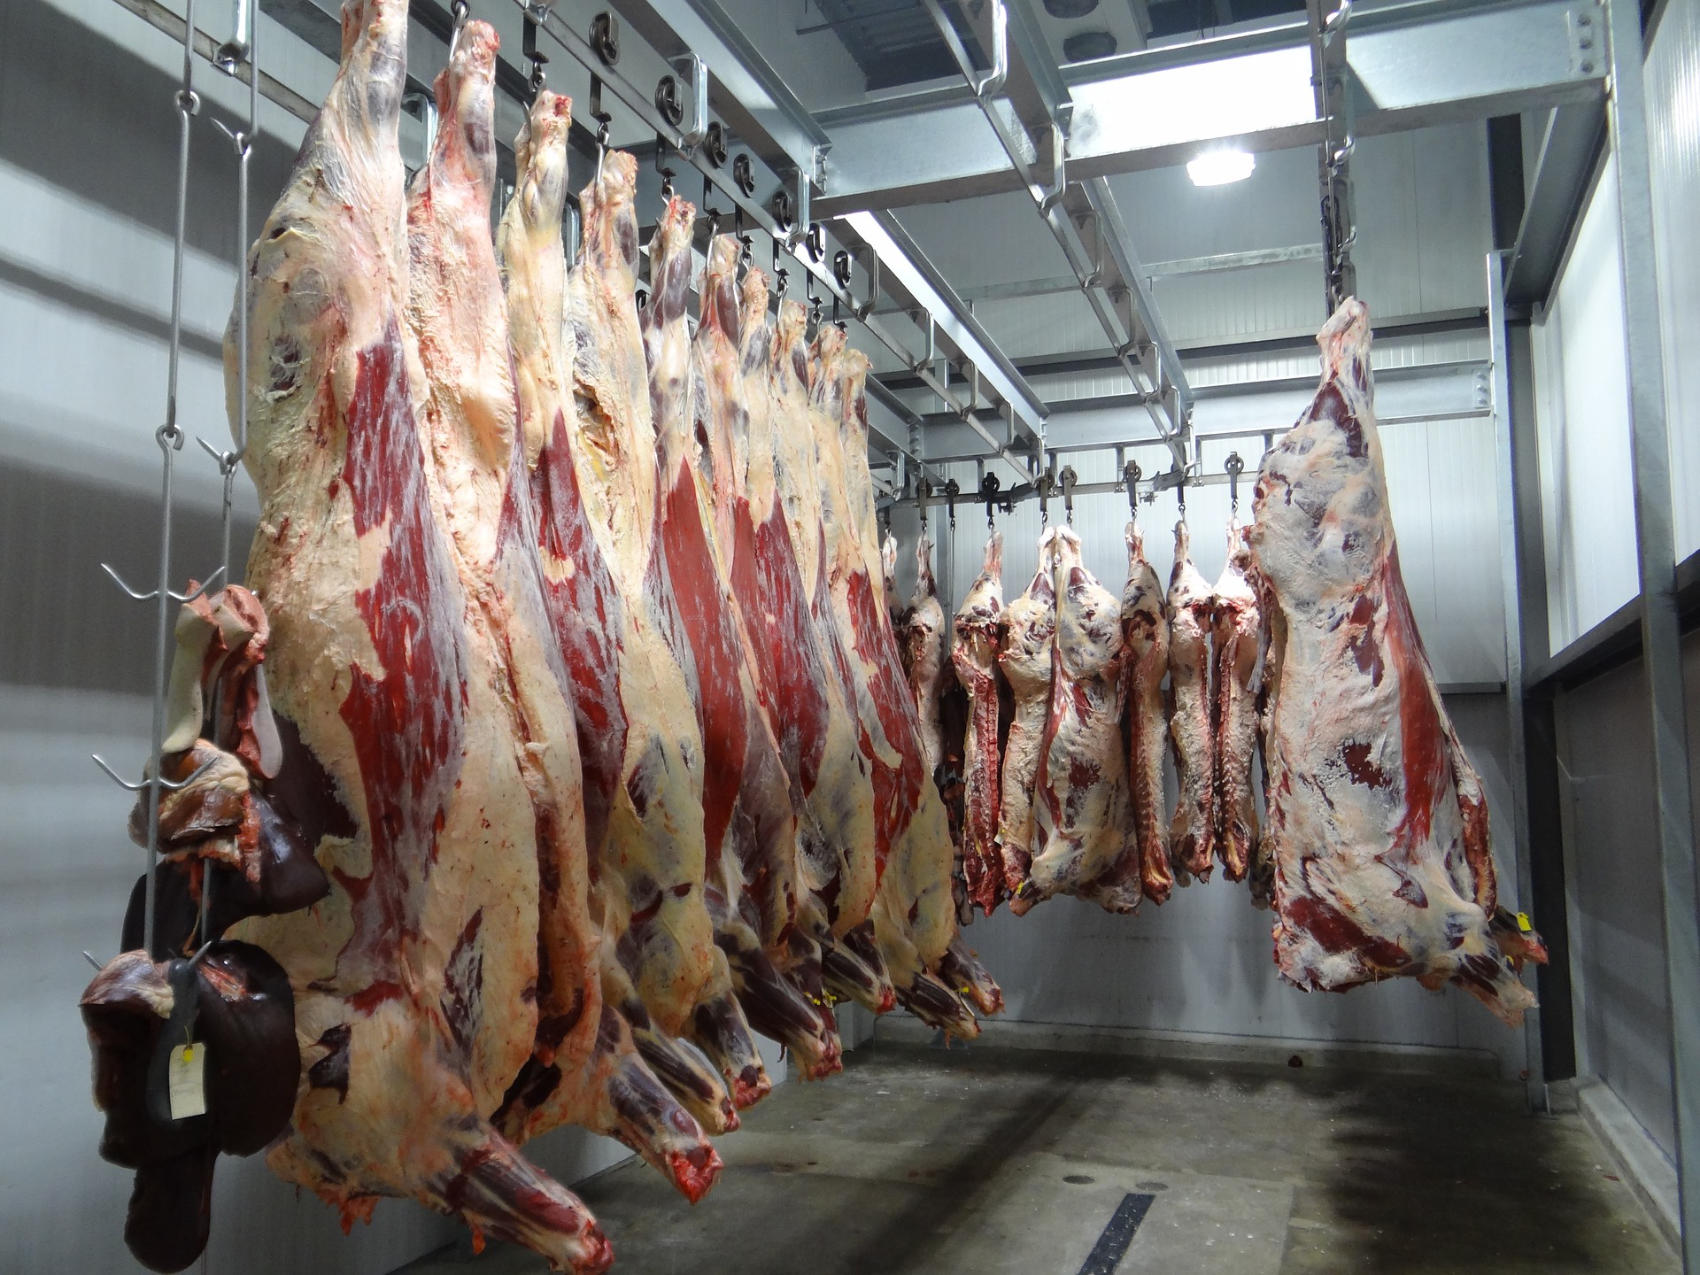 Beef Processing - Image by BlackRiv